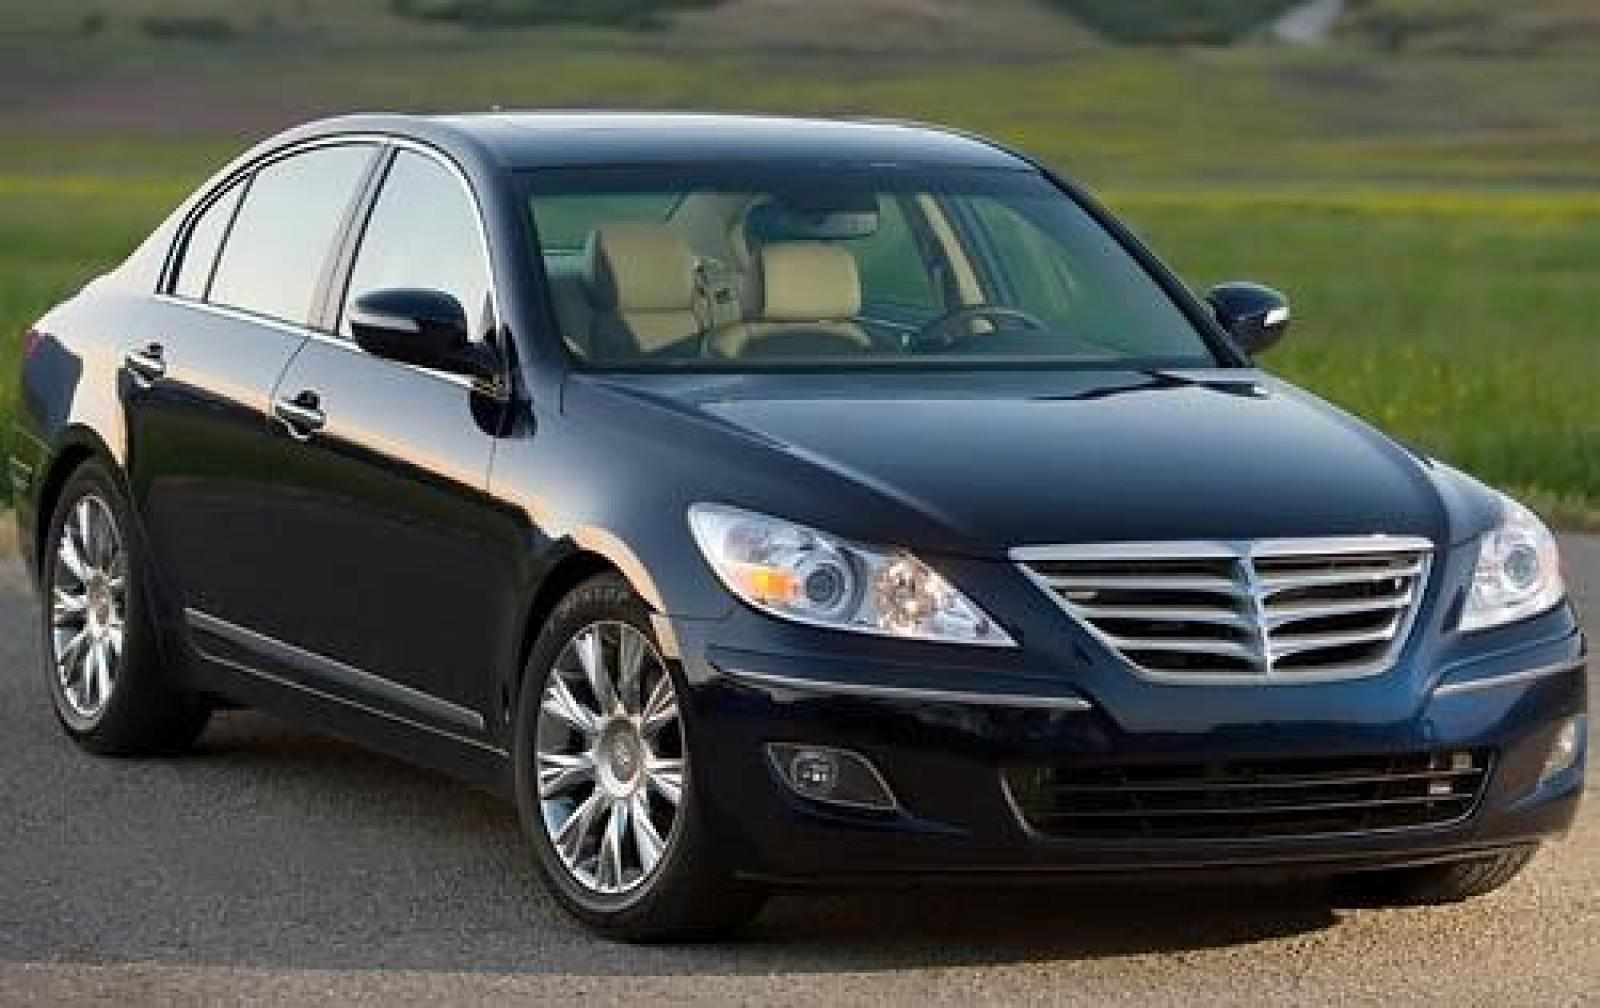 2011 Hyundai Genesis Information And Photos Zombiedrive Engine Diagram 1 800 1024 1280 1600 Origin